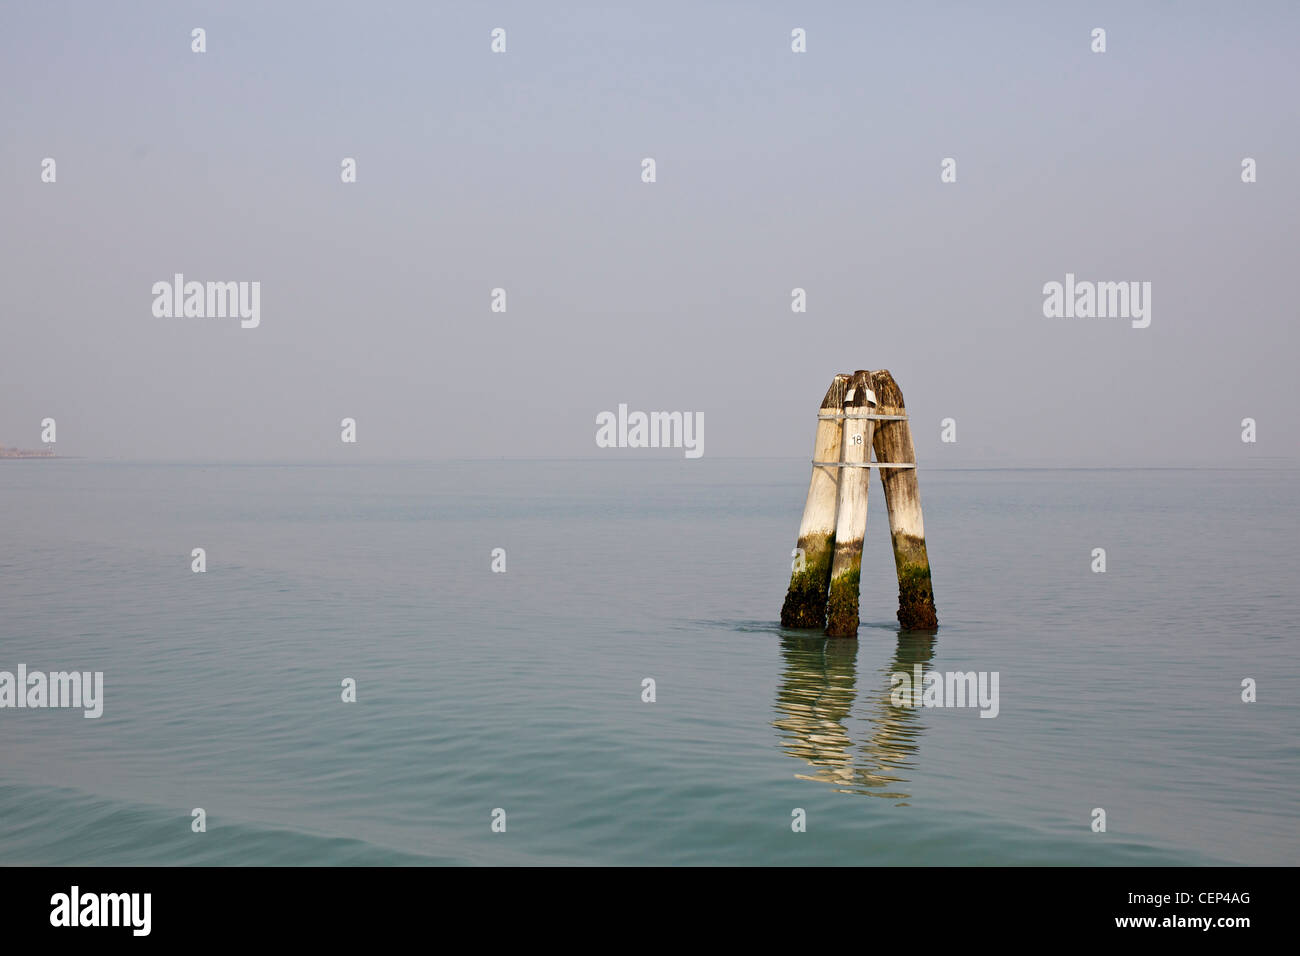 The briccole, wooden posts of European oak used to mark the navigation channels in the Venice lagoon - Stock Image